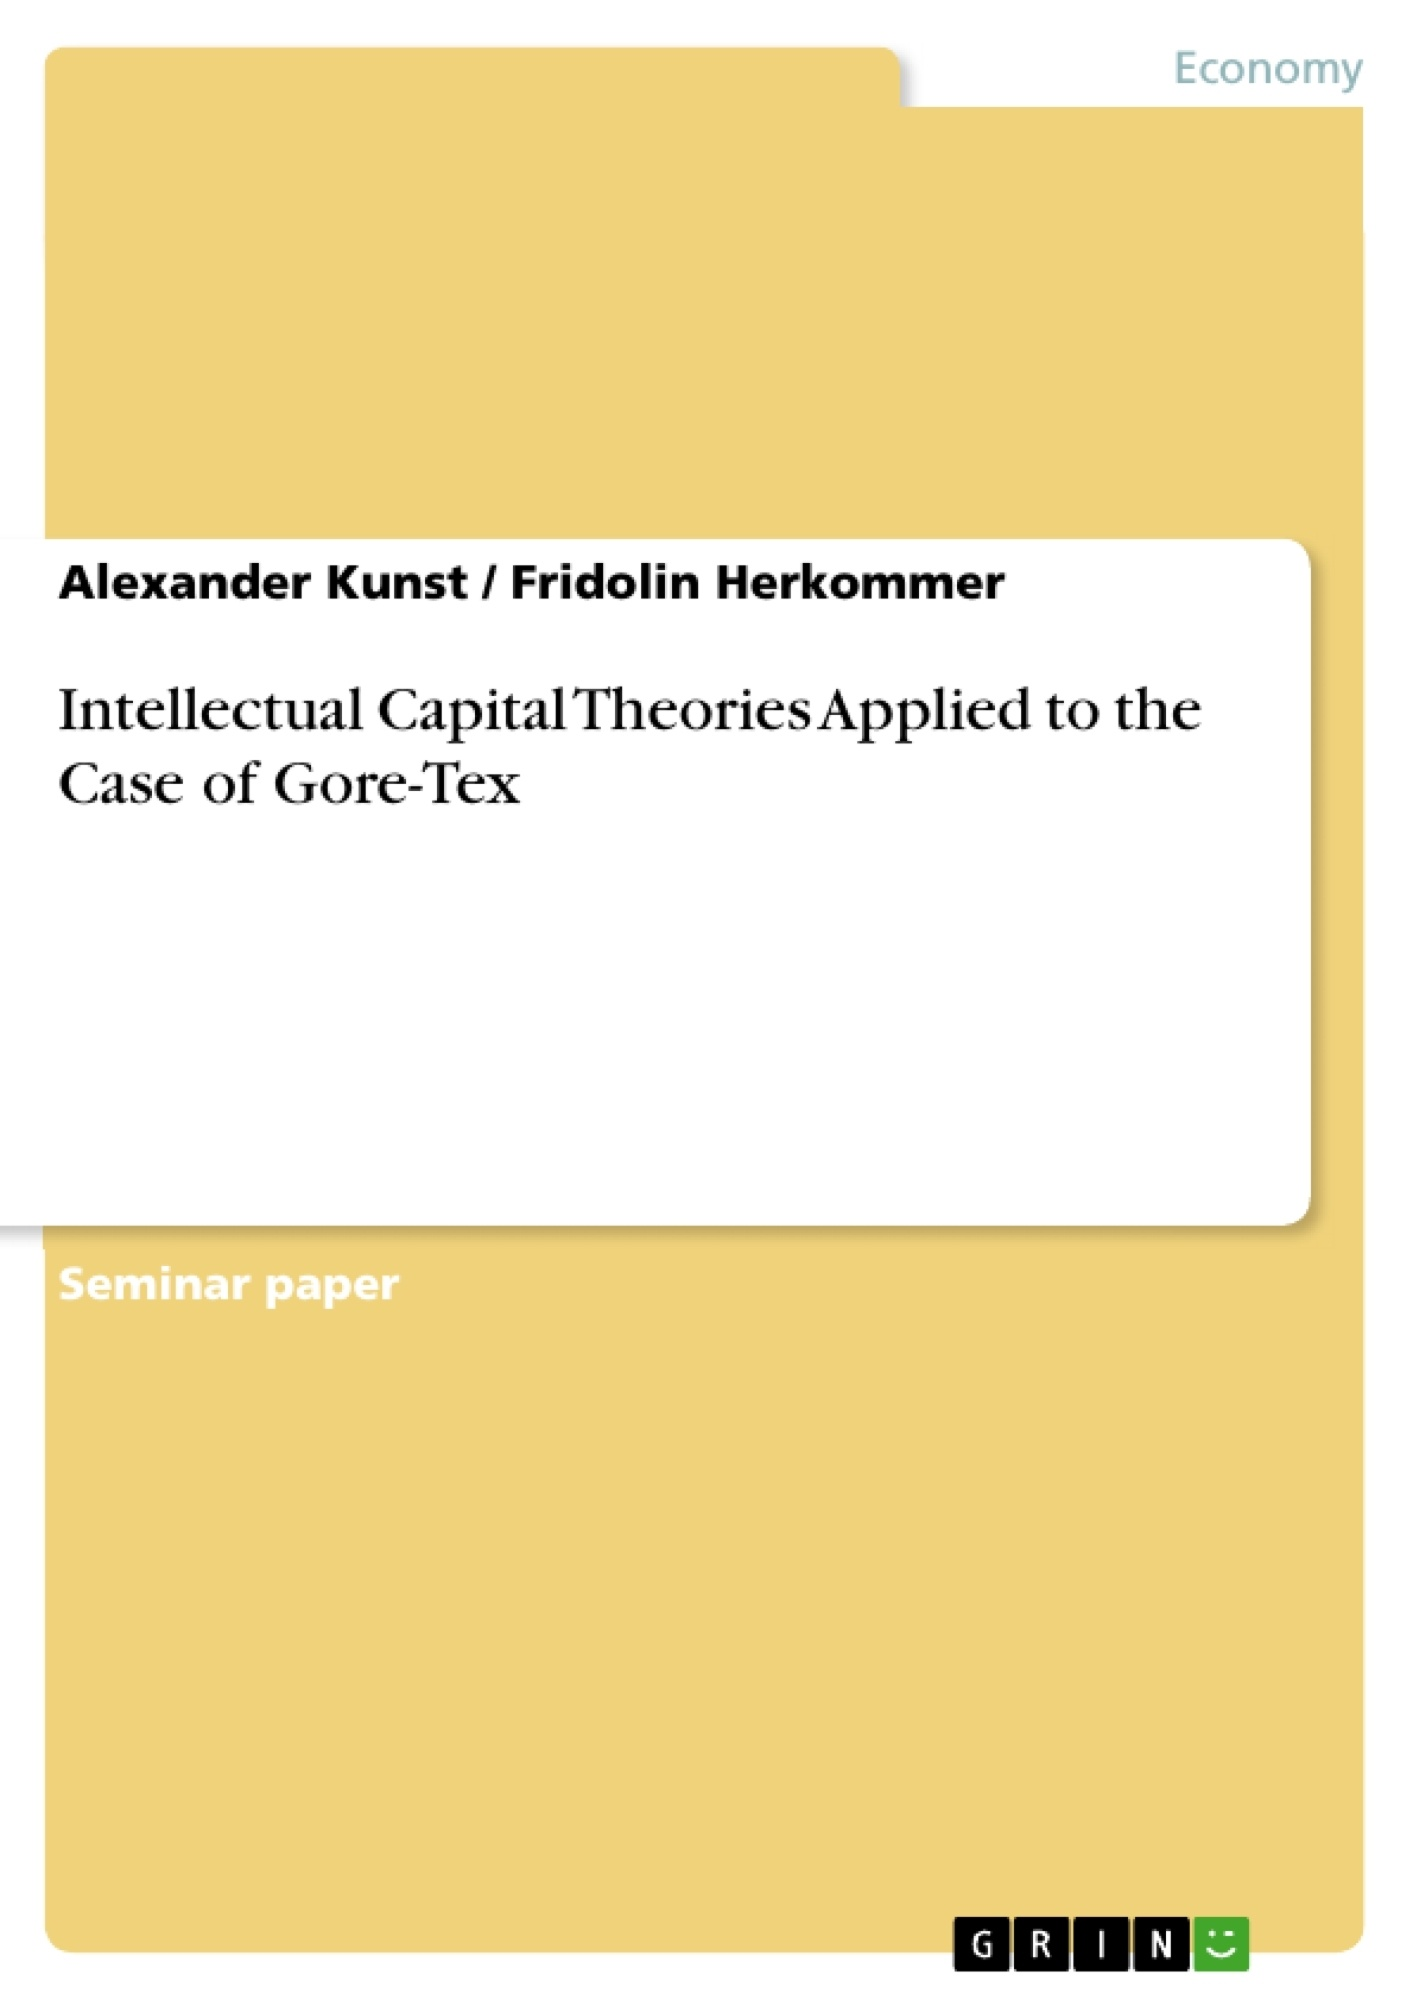 Title: Intellectual Capital Theories Applied to the Case of Gore-Tex